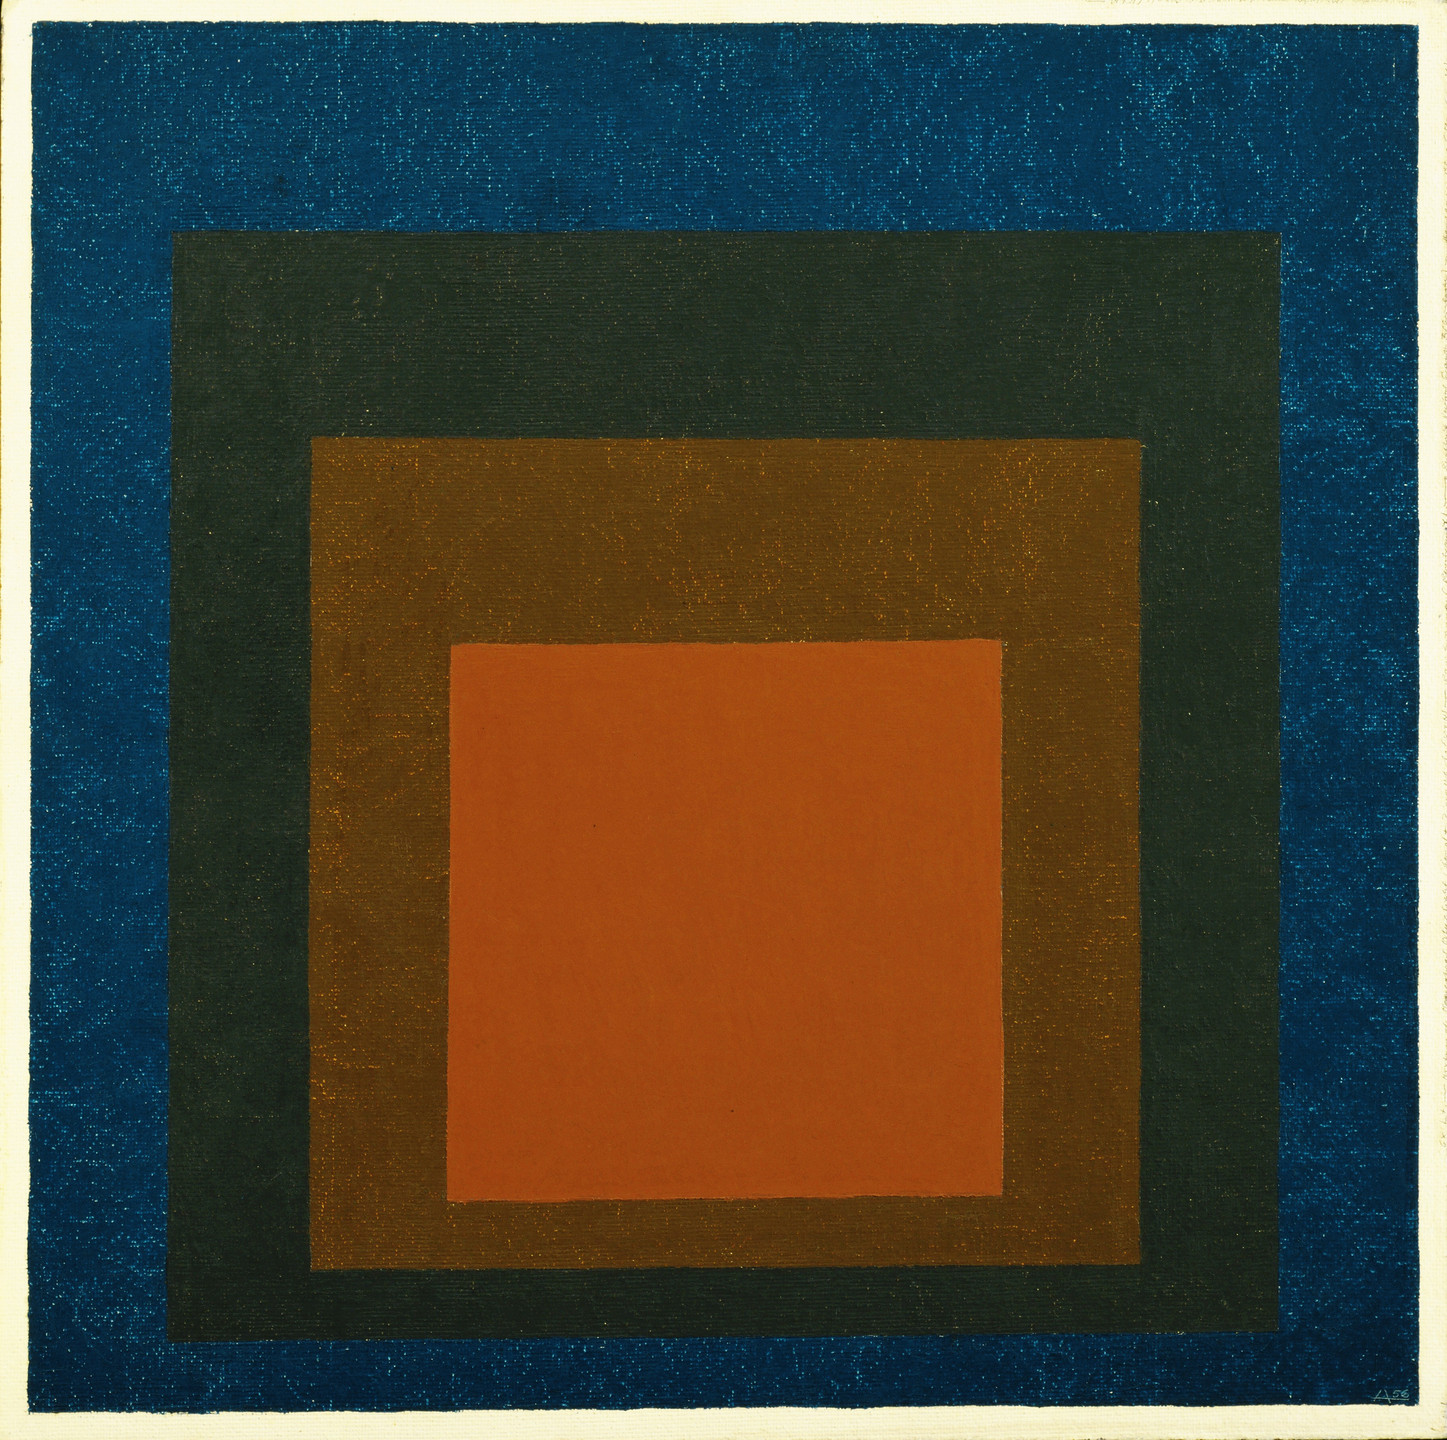 Josef Albers. Study for Homage to the Square: Night Shades. 1956